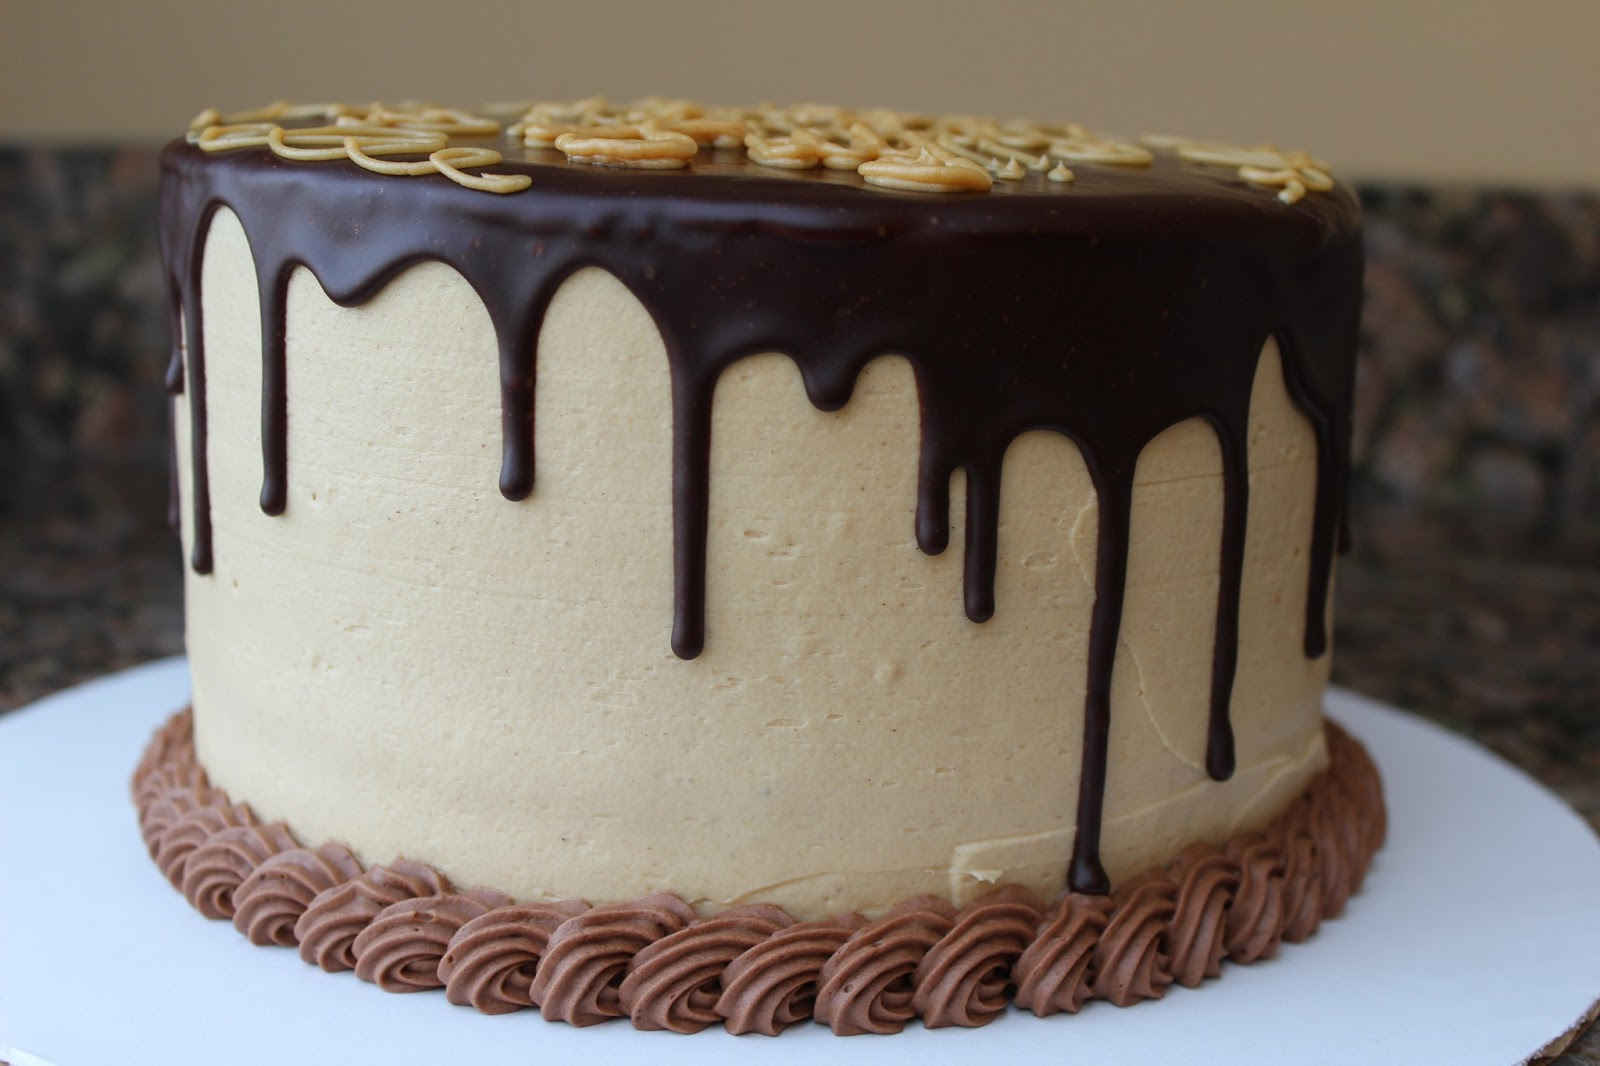 Cake With Chocolate Dripping : Hanna s Desserts: chocolate peanut butter ganache cake